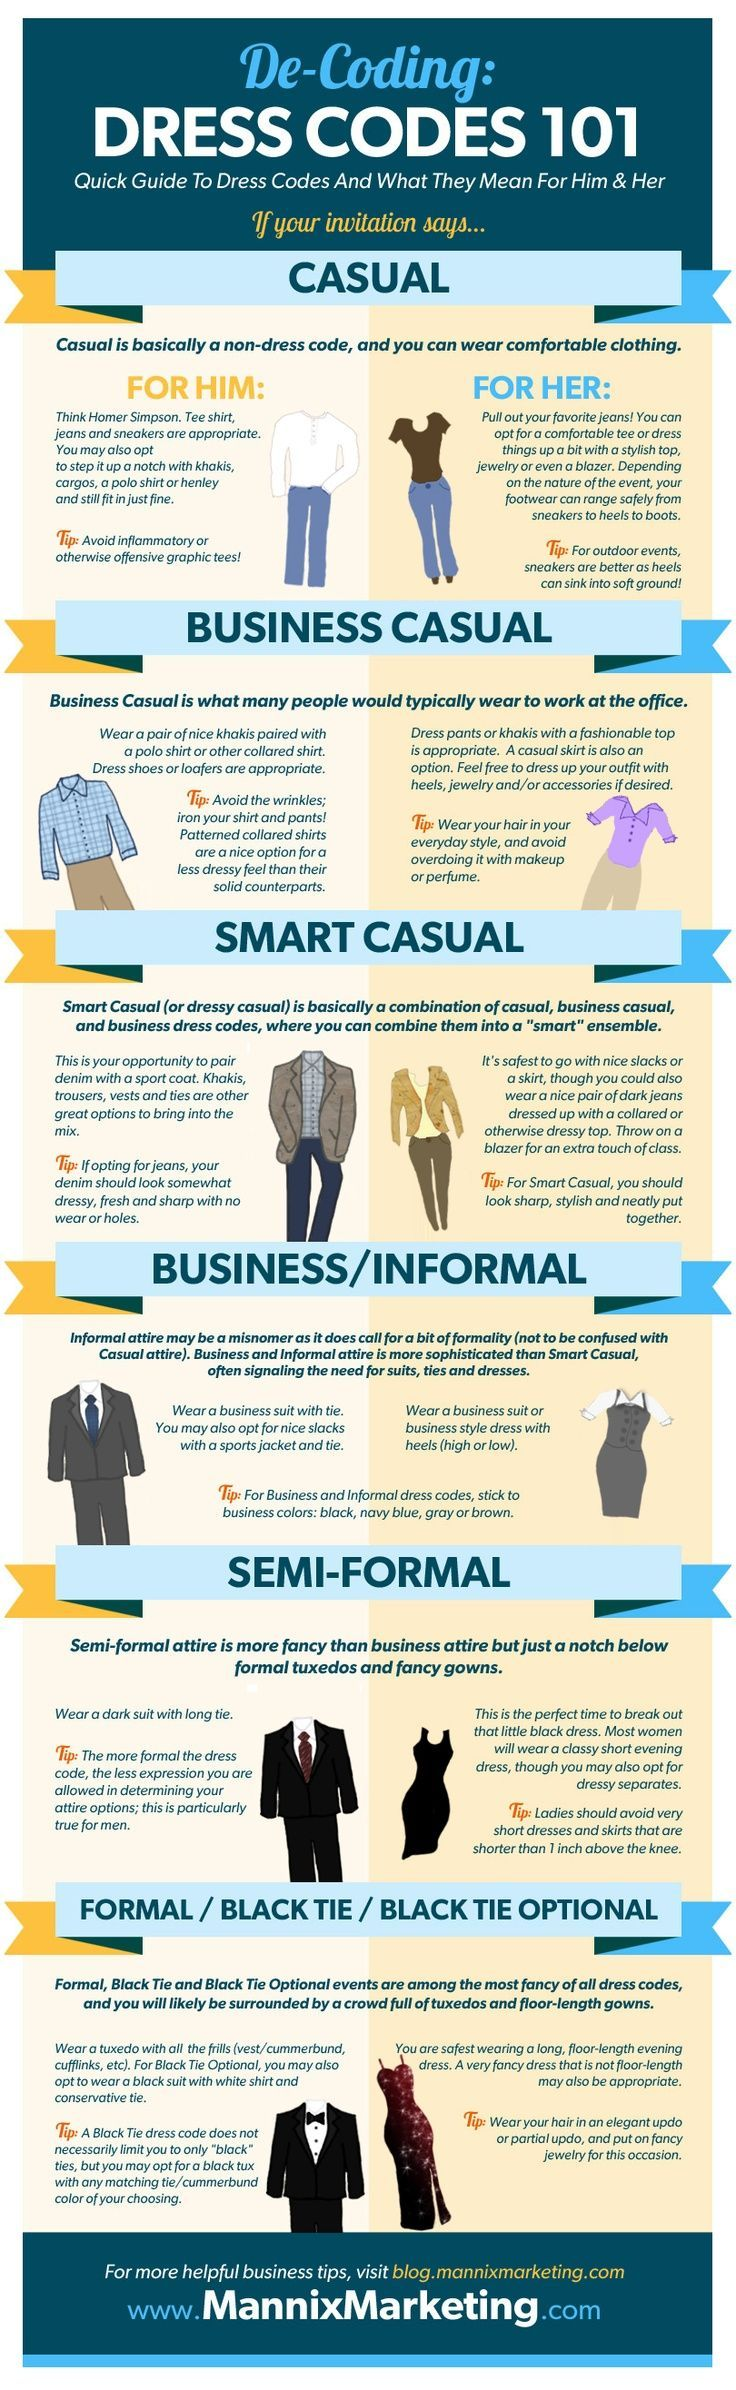 do you know the difference between casual and business casual or formal and black tie